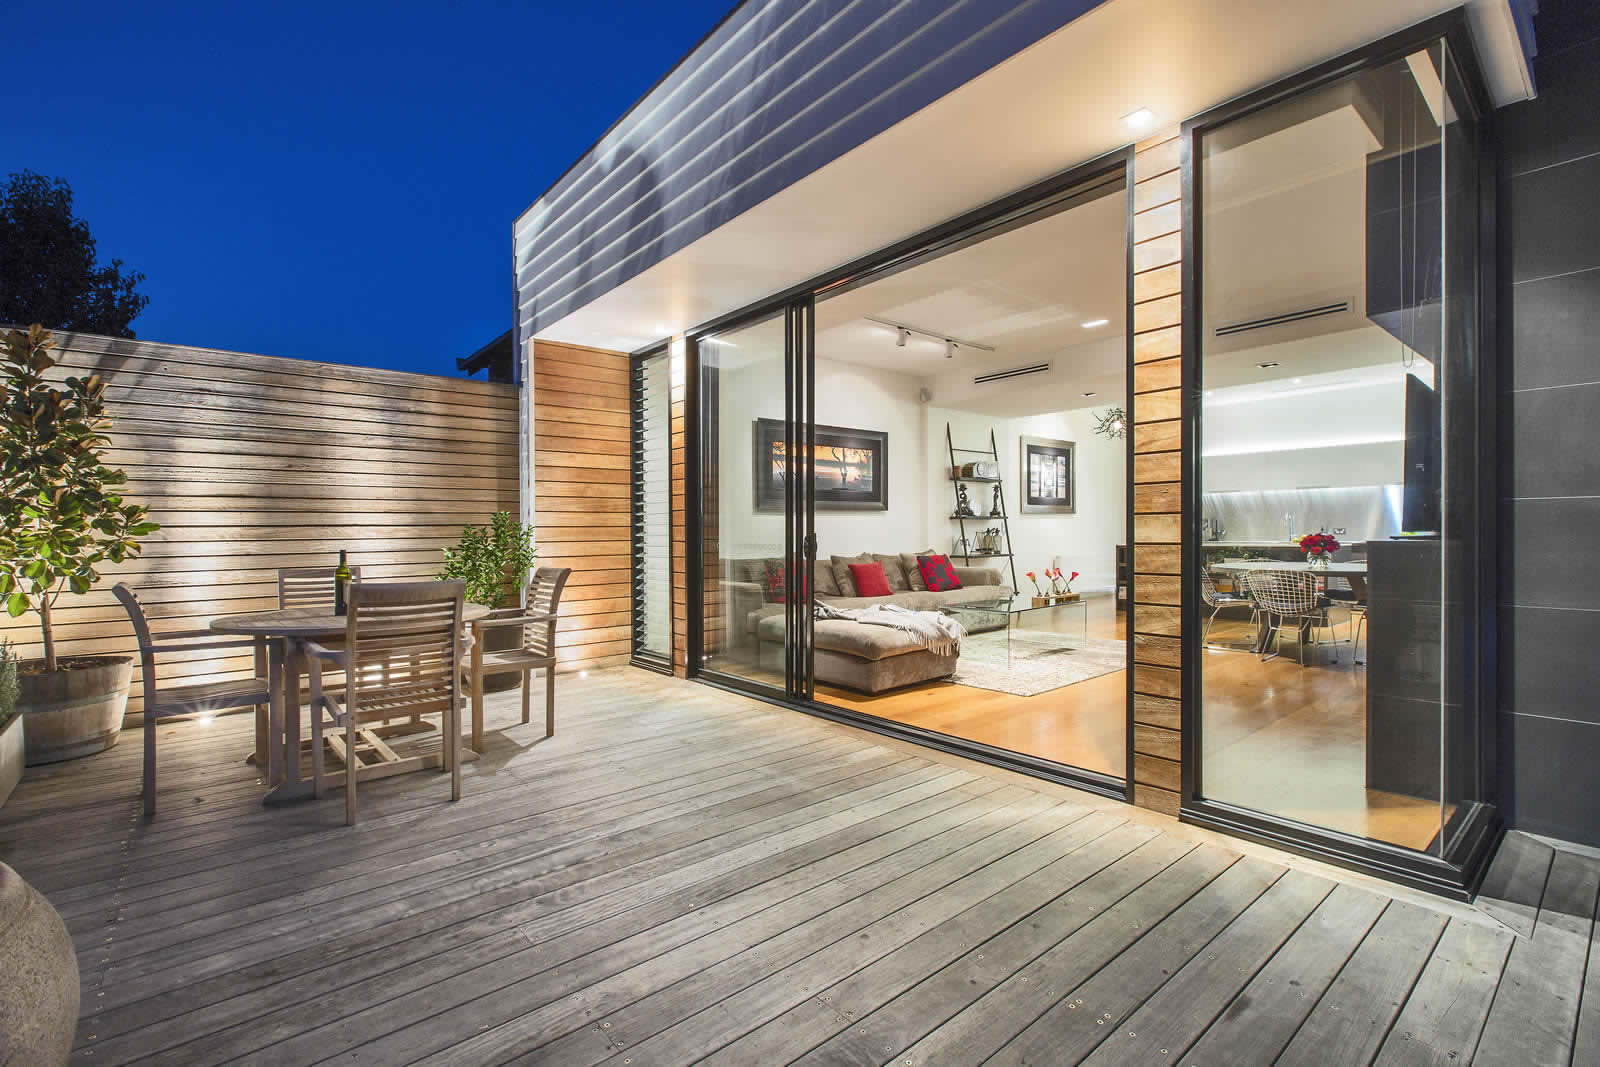 Home Designs Melbourne Victoria